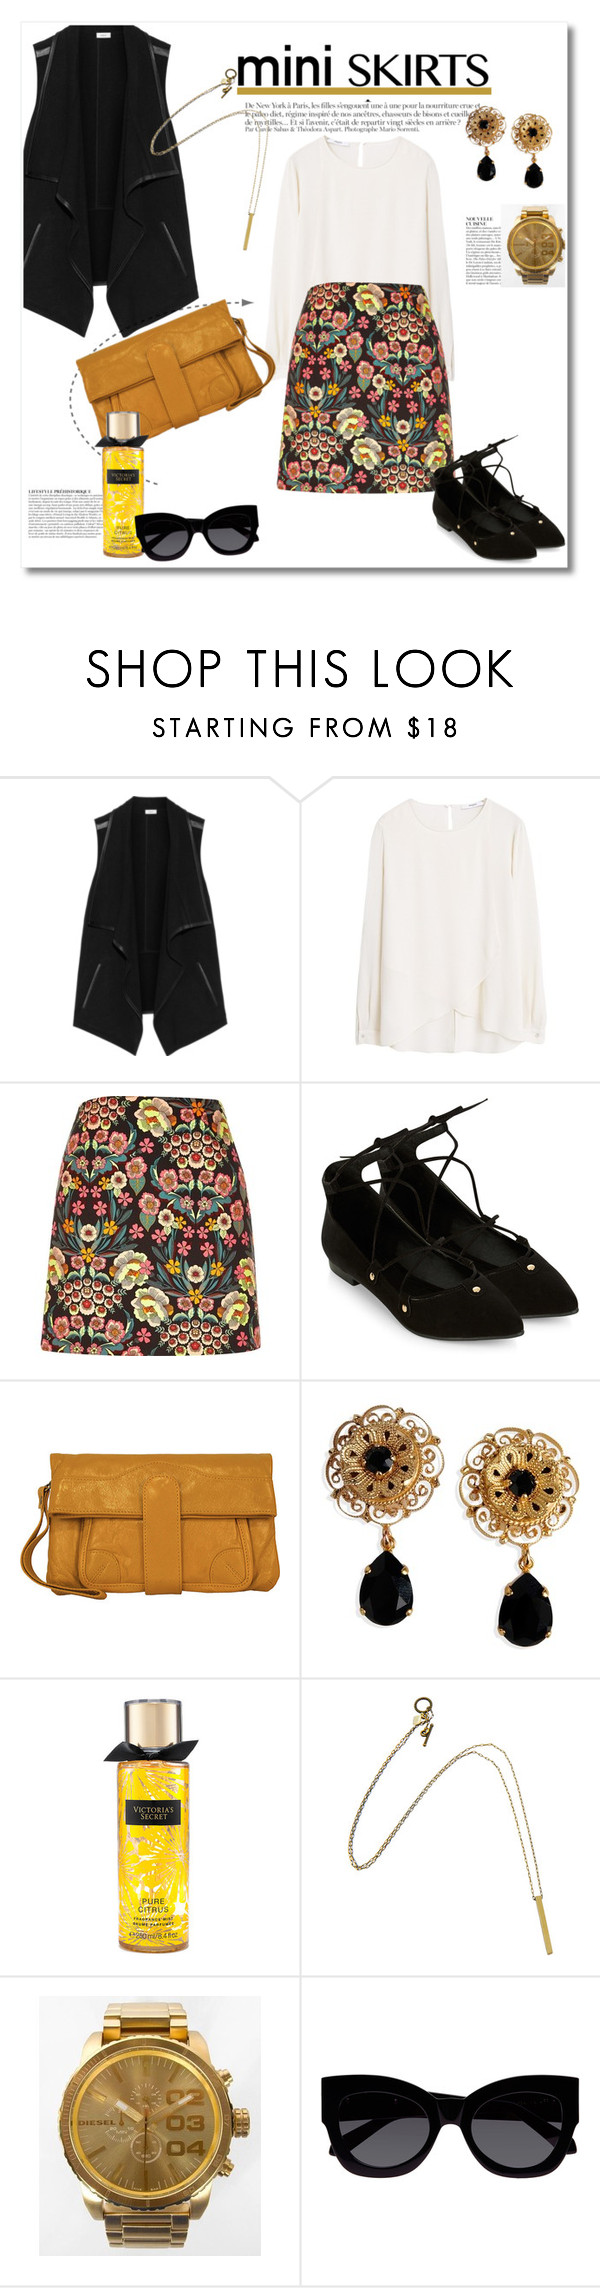 """""""Get the look"""" by vkmd on Polyvore featuring Vince, MANGO, Accessorize, Anja, Latico, Dolce&Gabbana, Diesel, Karen Walker and MINISKIRT"""